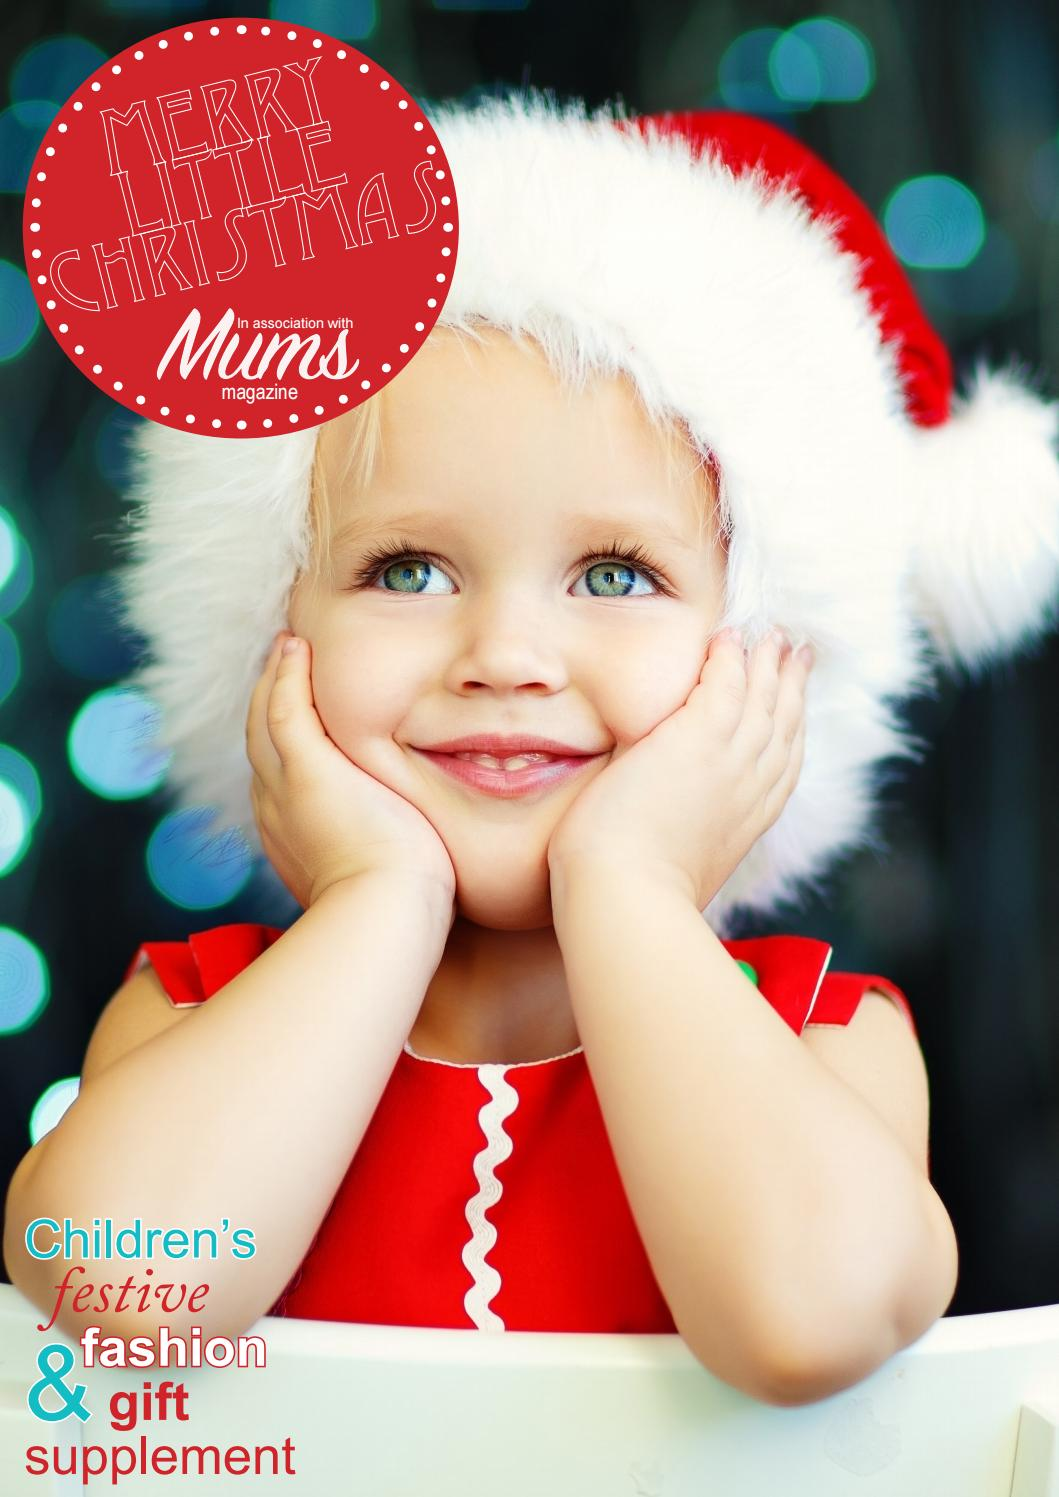 8ba974b9a Merry little christmas 2017 by Lifestyle Magazines - issuu